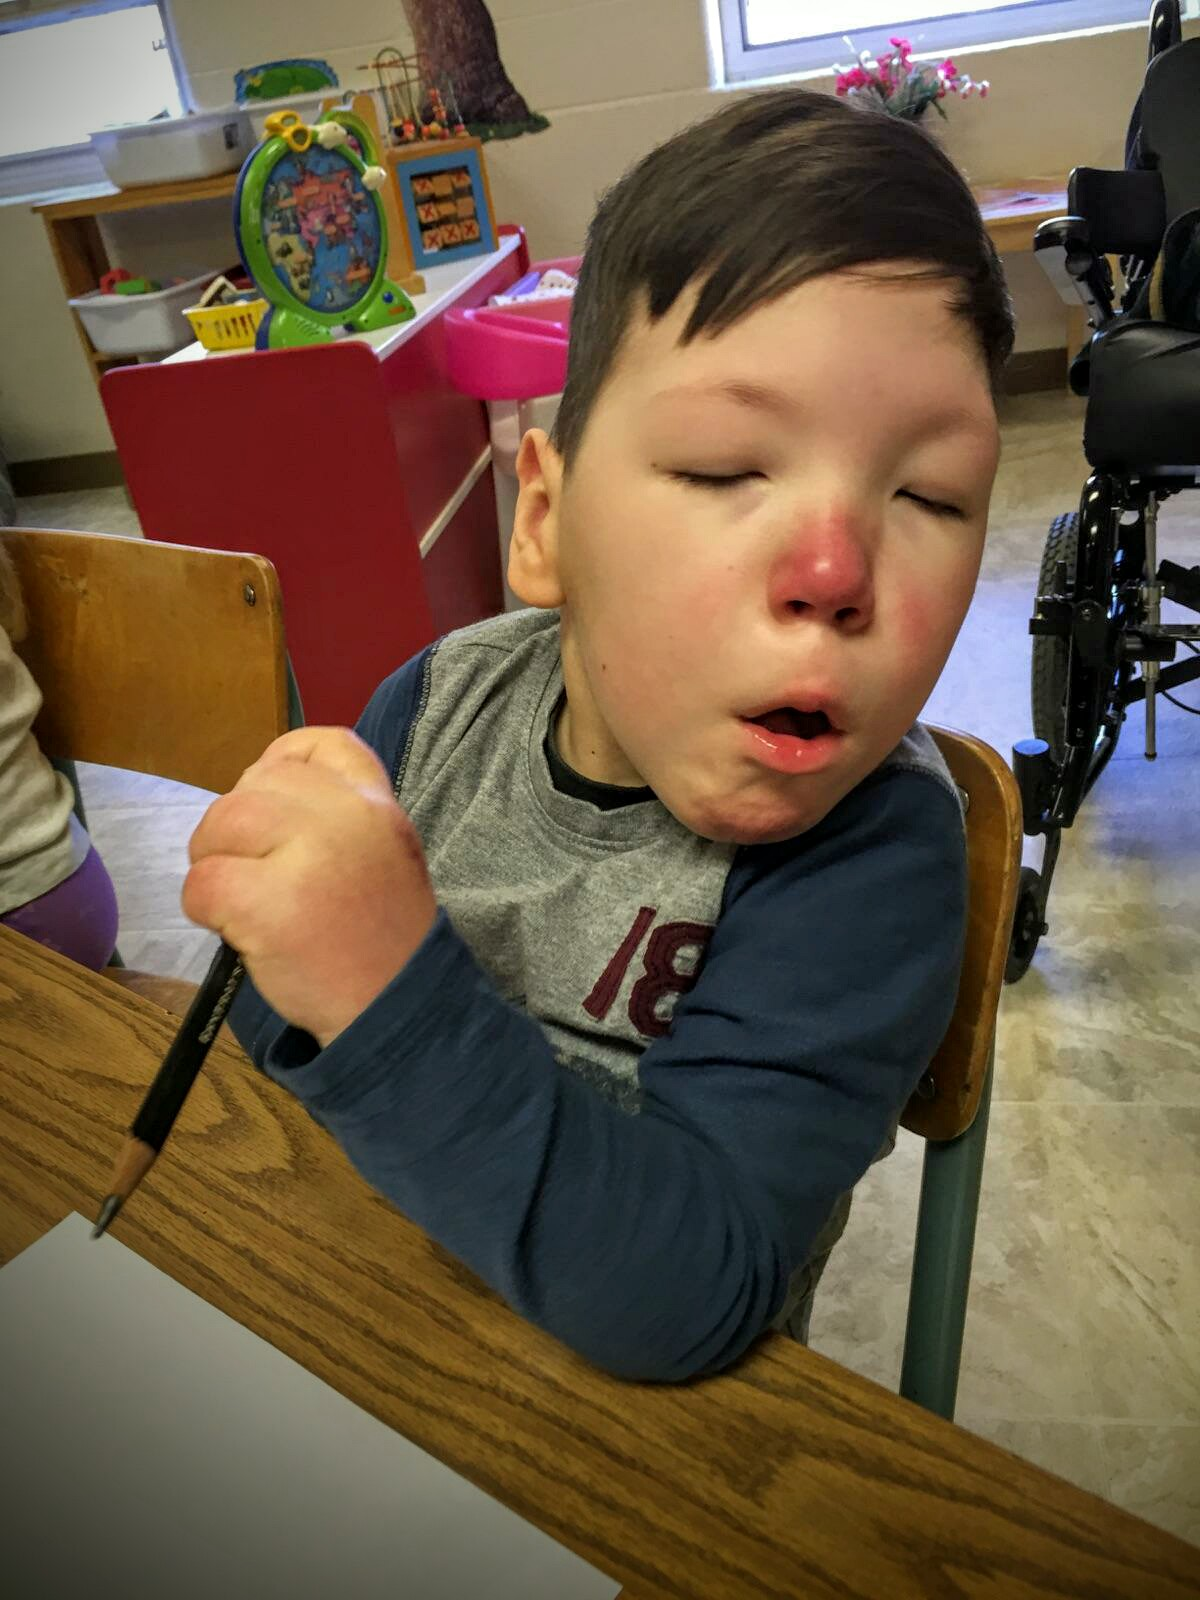 Pardon the red nose. On top of BiPAP reasons, he sometime gets toasty in his classroom.